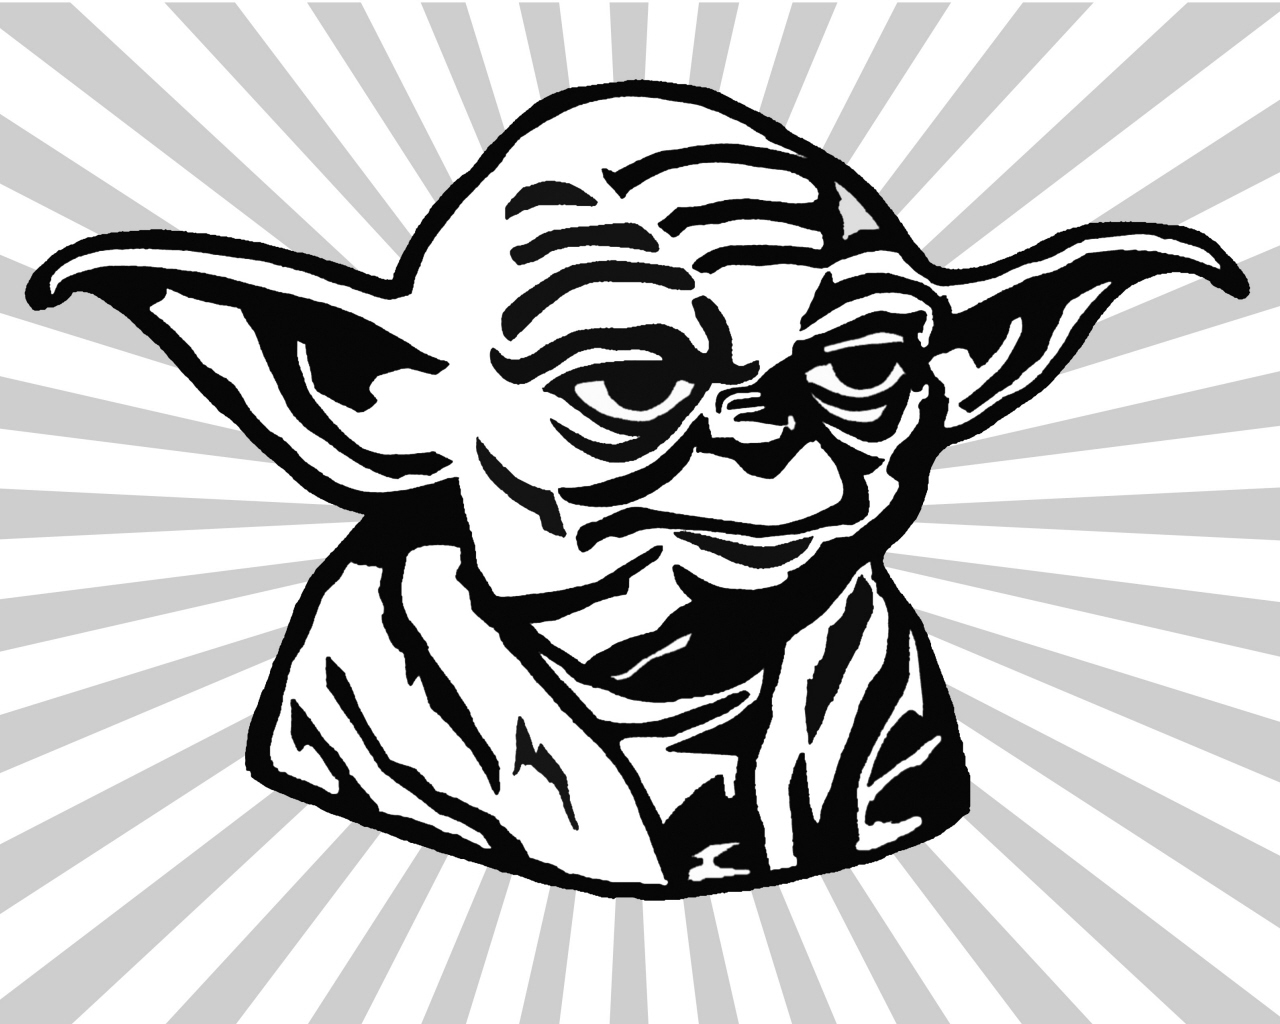 Star Wars Wallpapers Downloads Fun Stuff Yoda S Datapad